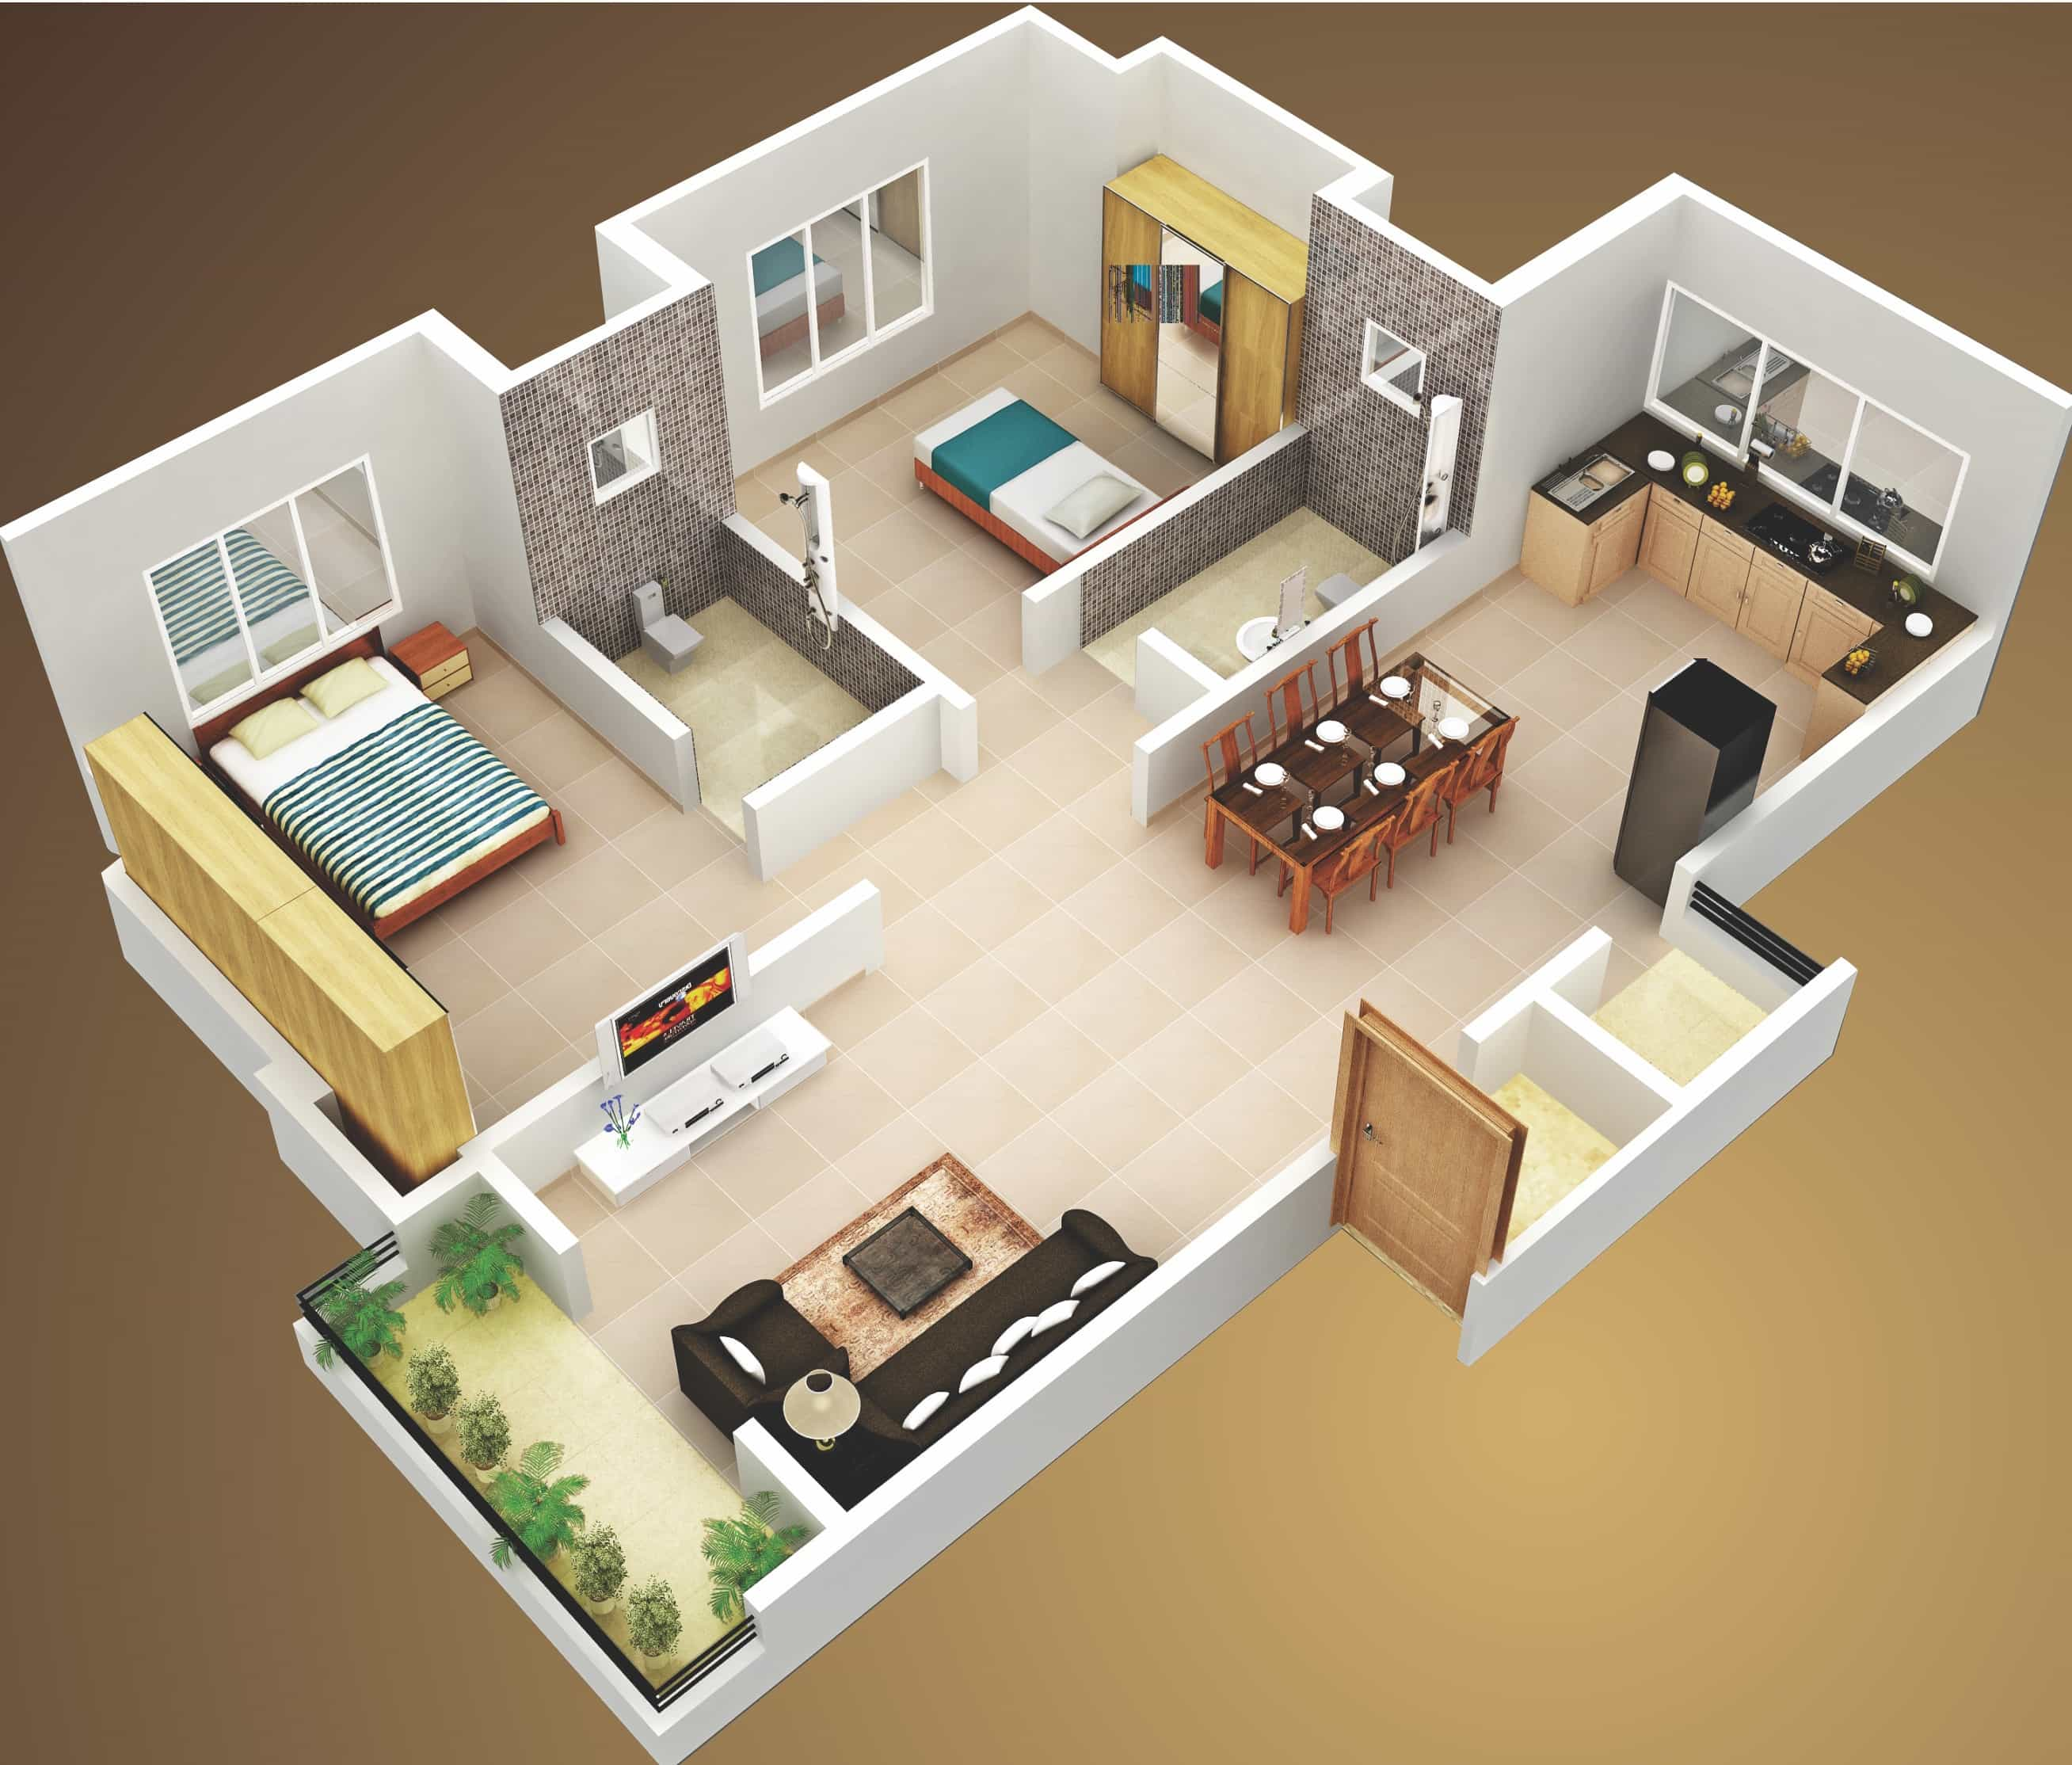 Home 3d Design Online Minimalist: 3D Two Bedroom House Layout Design Plans #22449